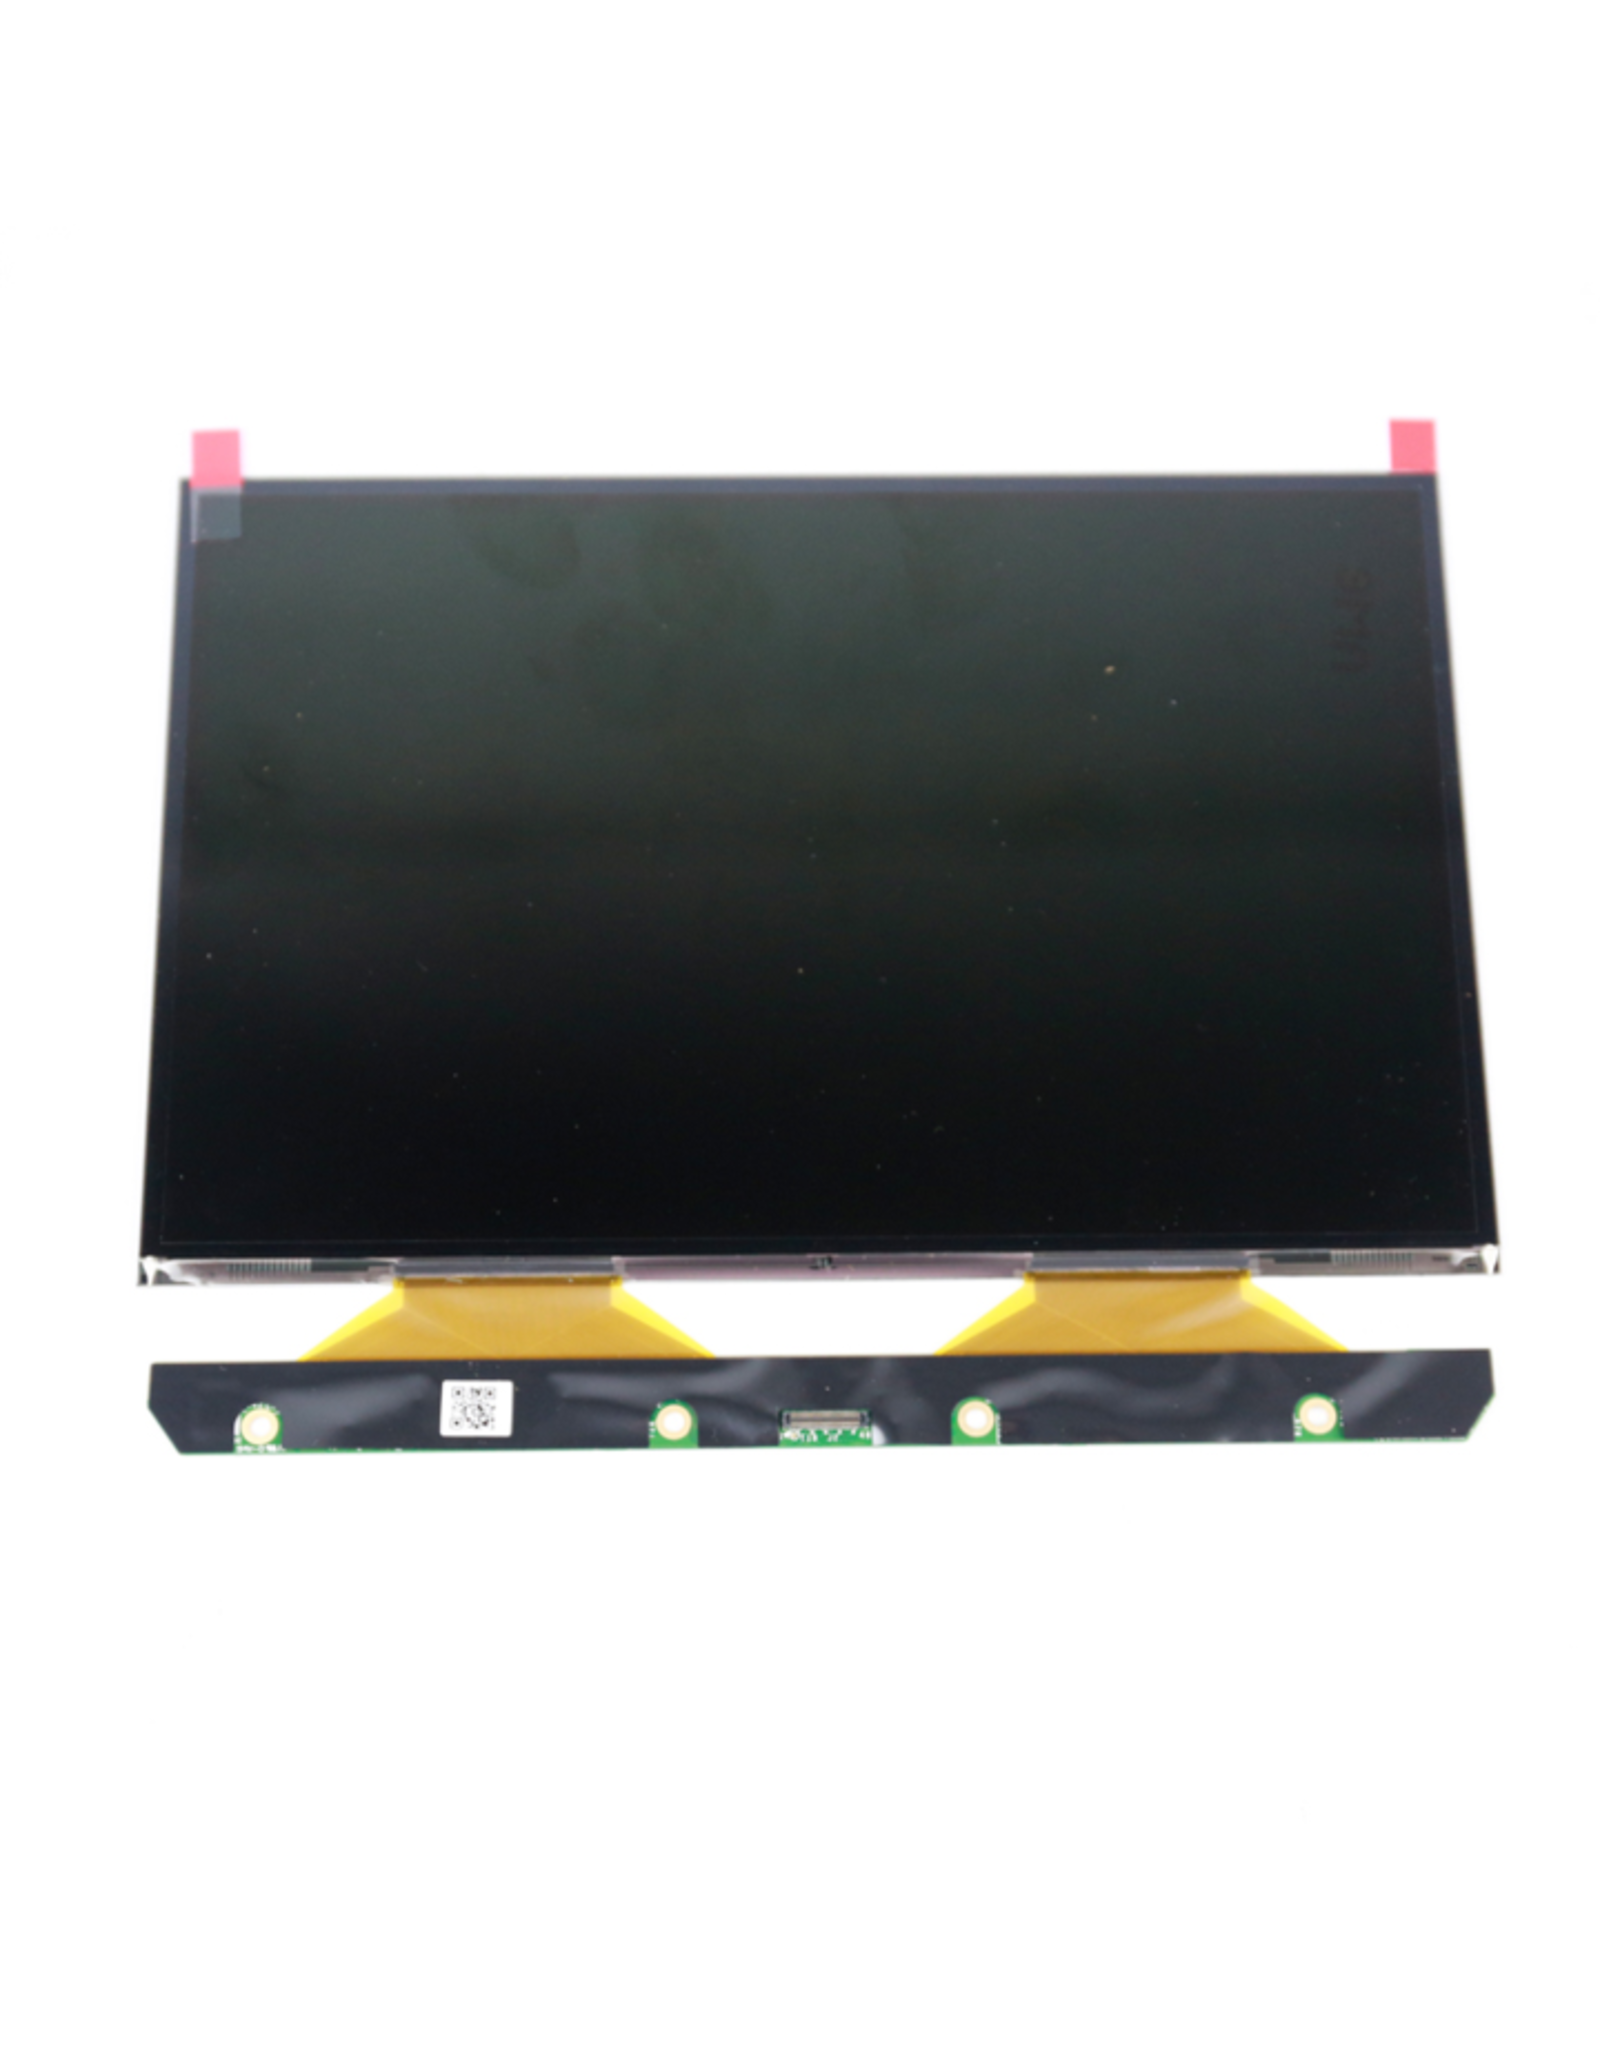 Wanhao Wanhao CGR lcd 8.9-inch display